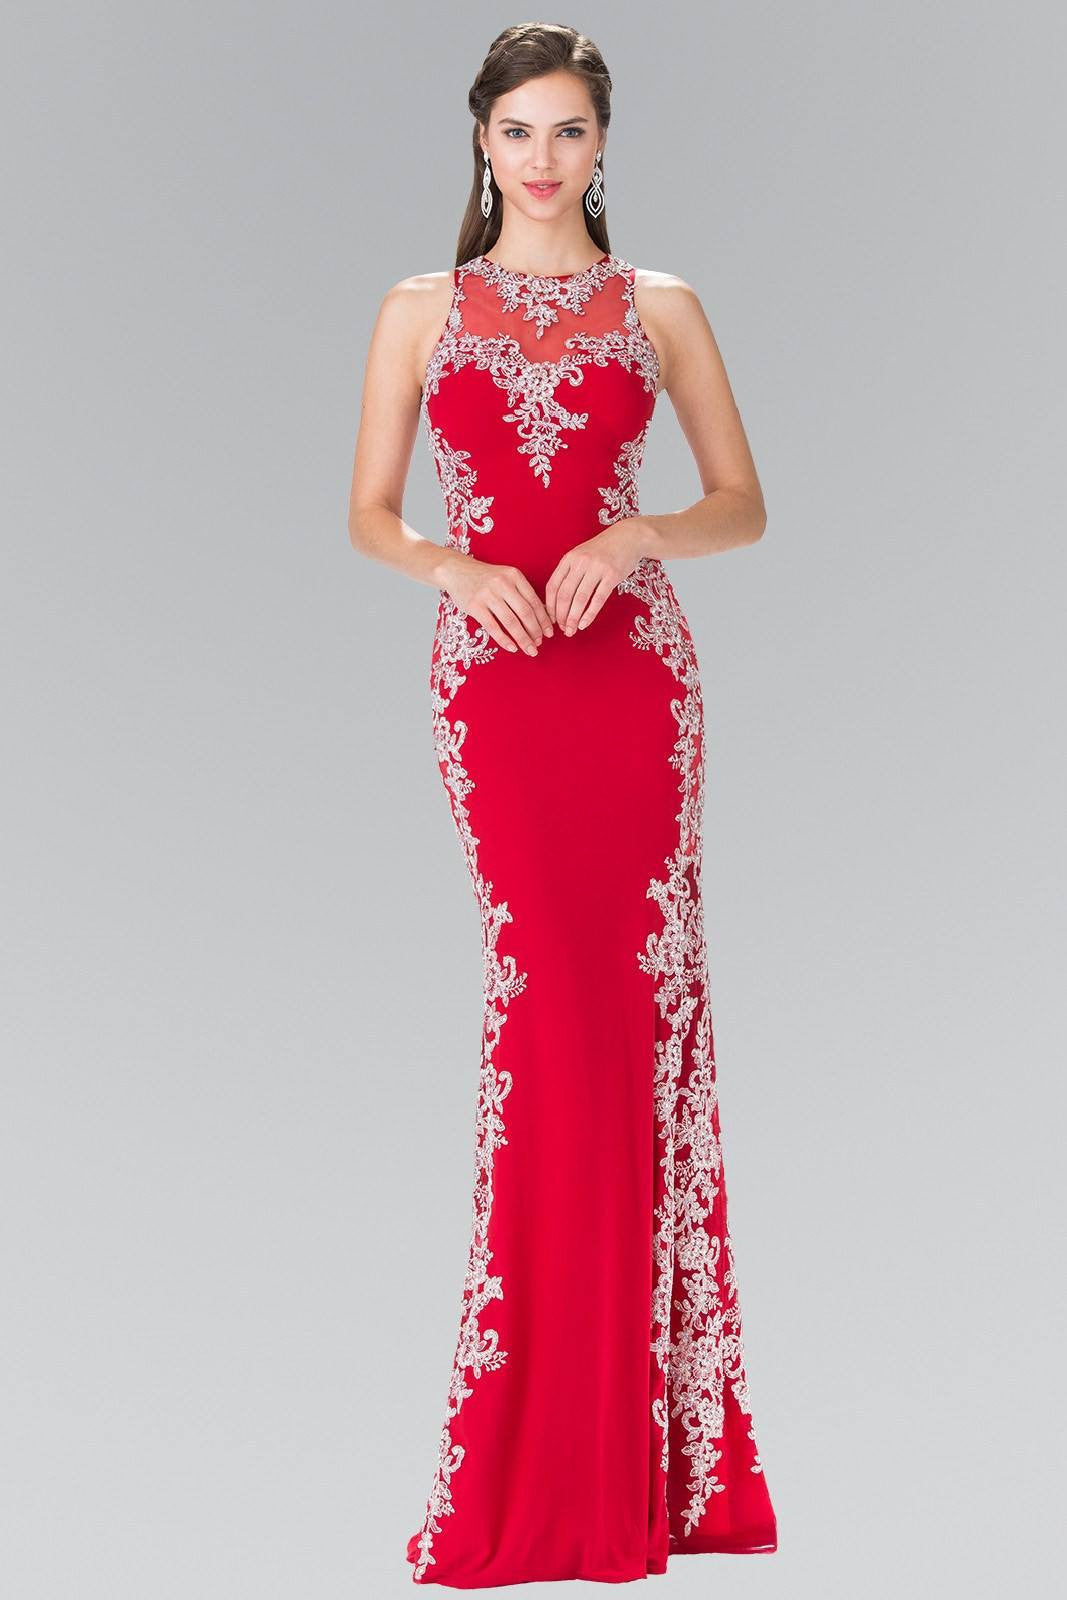 Trendy plus size prom dress & Evening gown – Simply Fab Dress